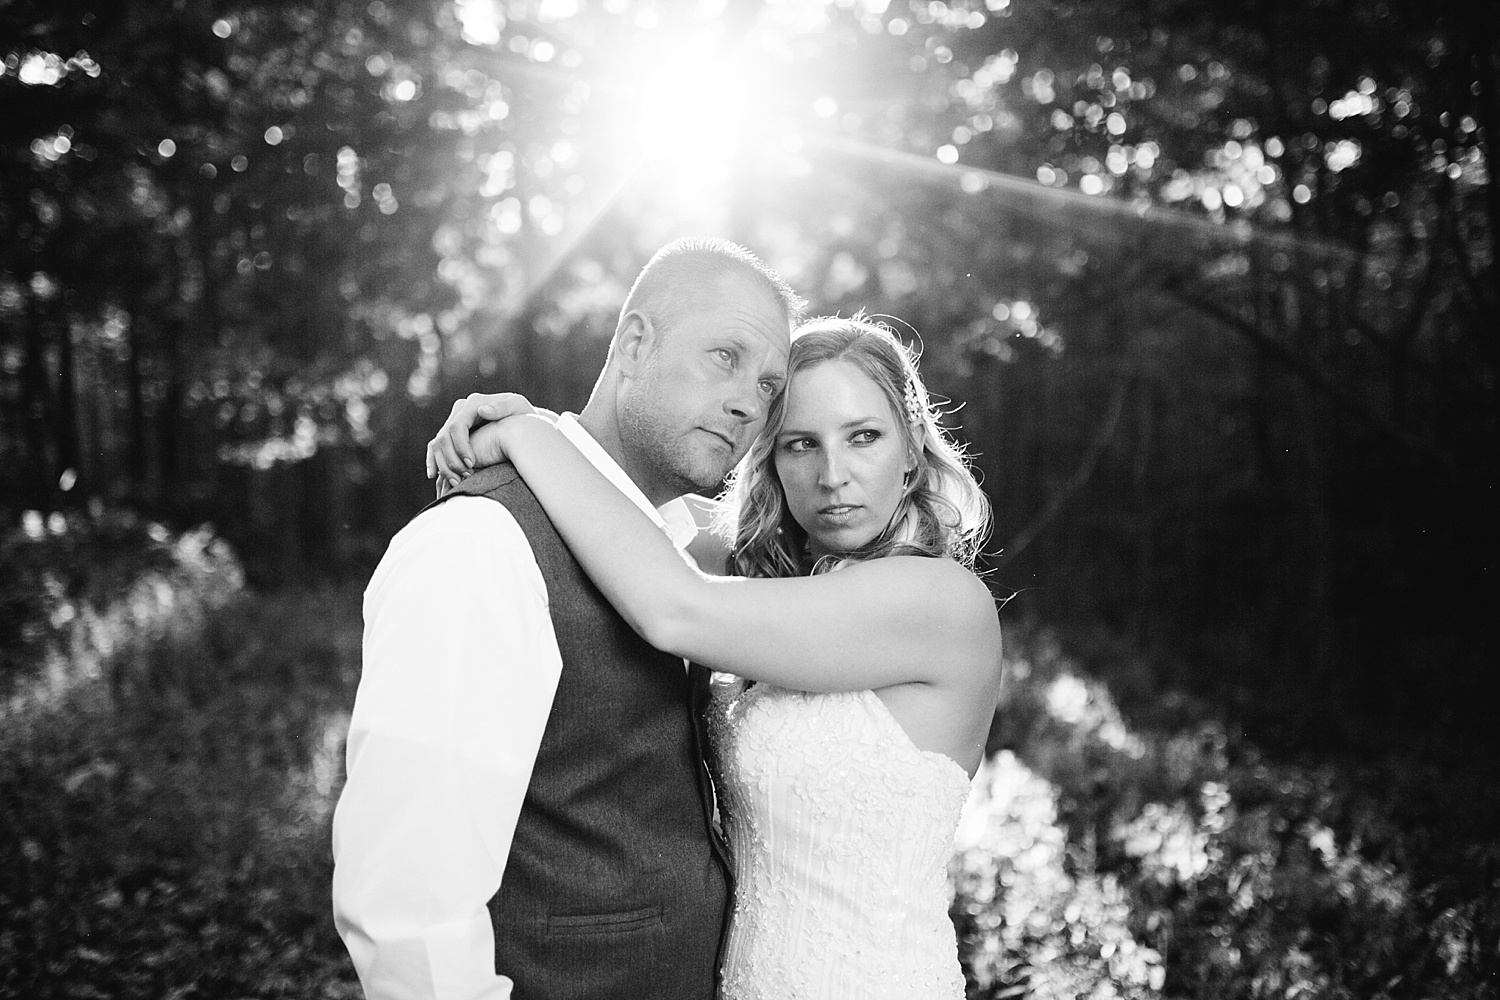 jennyryan_newbeginnings_farmstead_upstatenewyork_wedding_image102.jpg